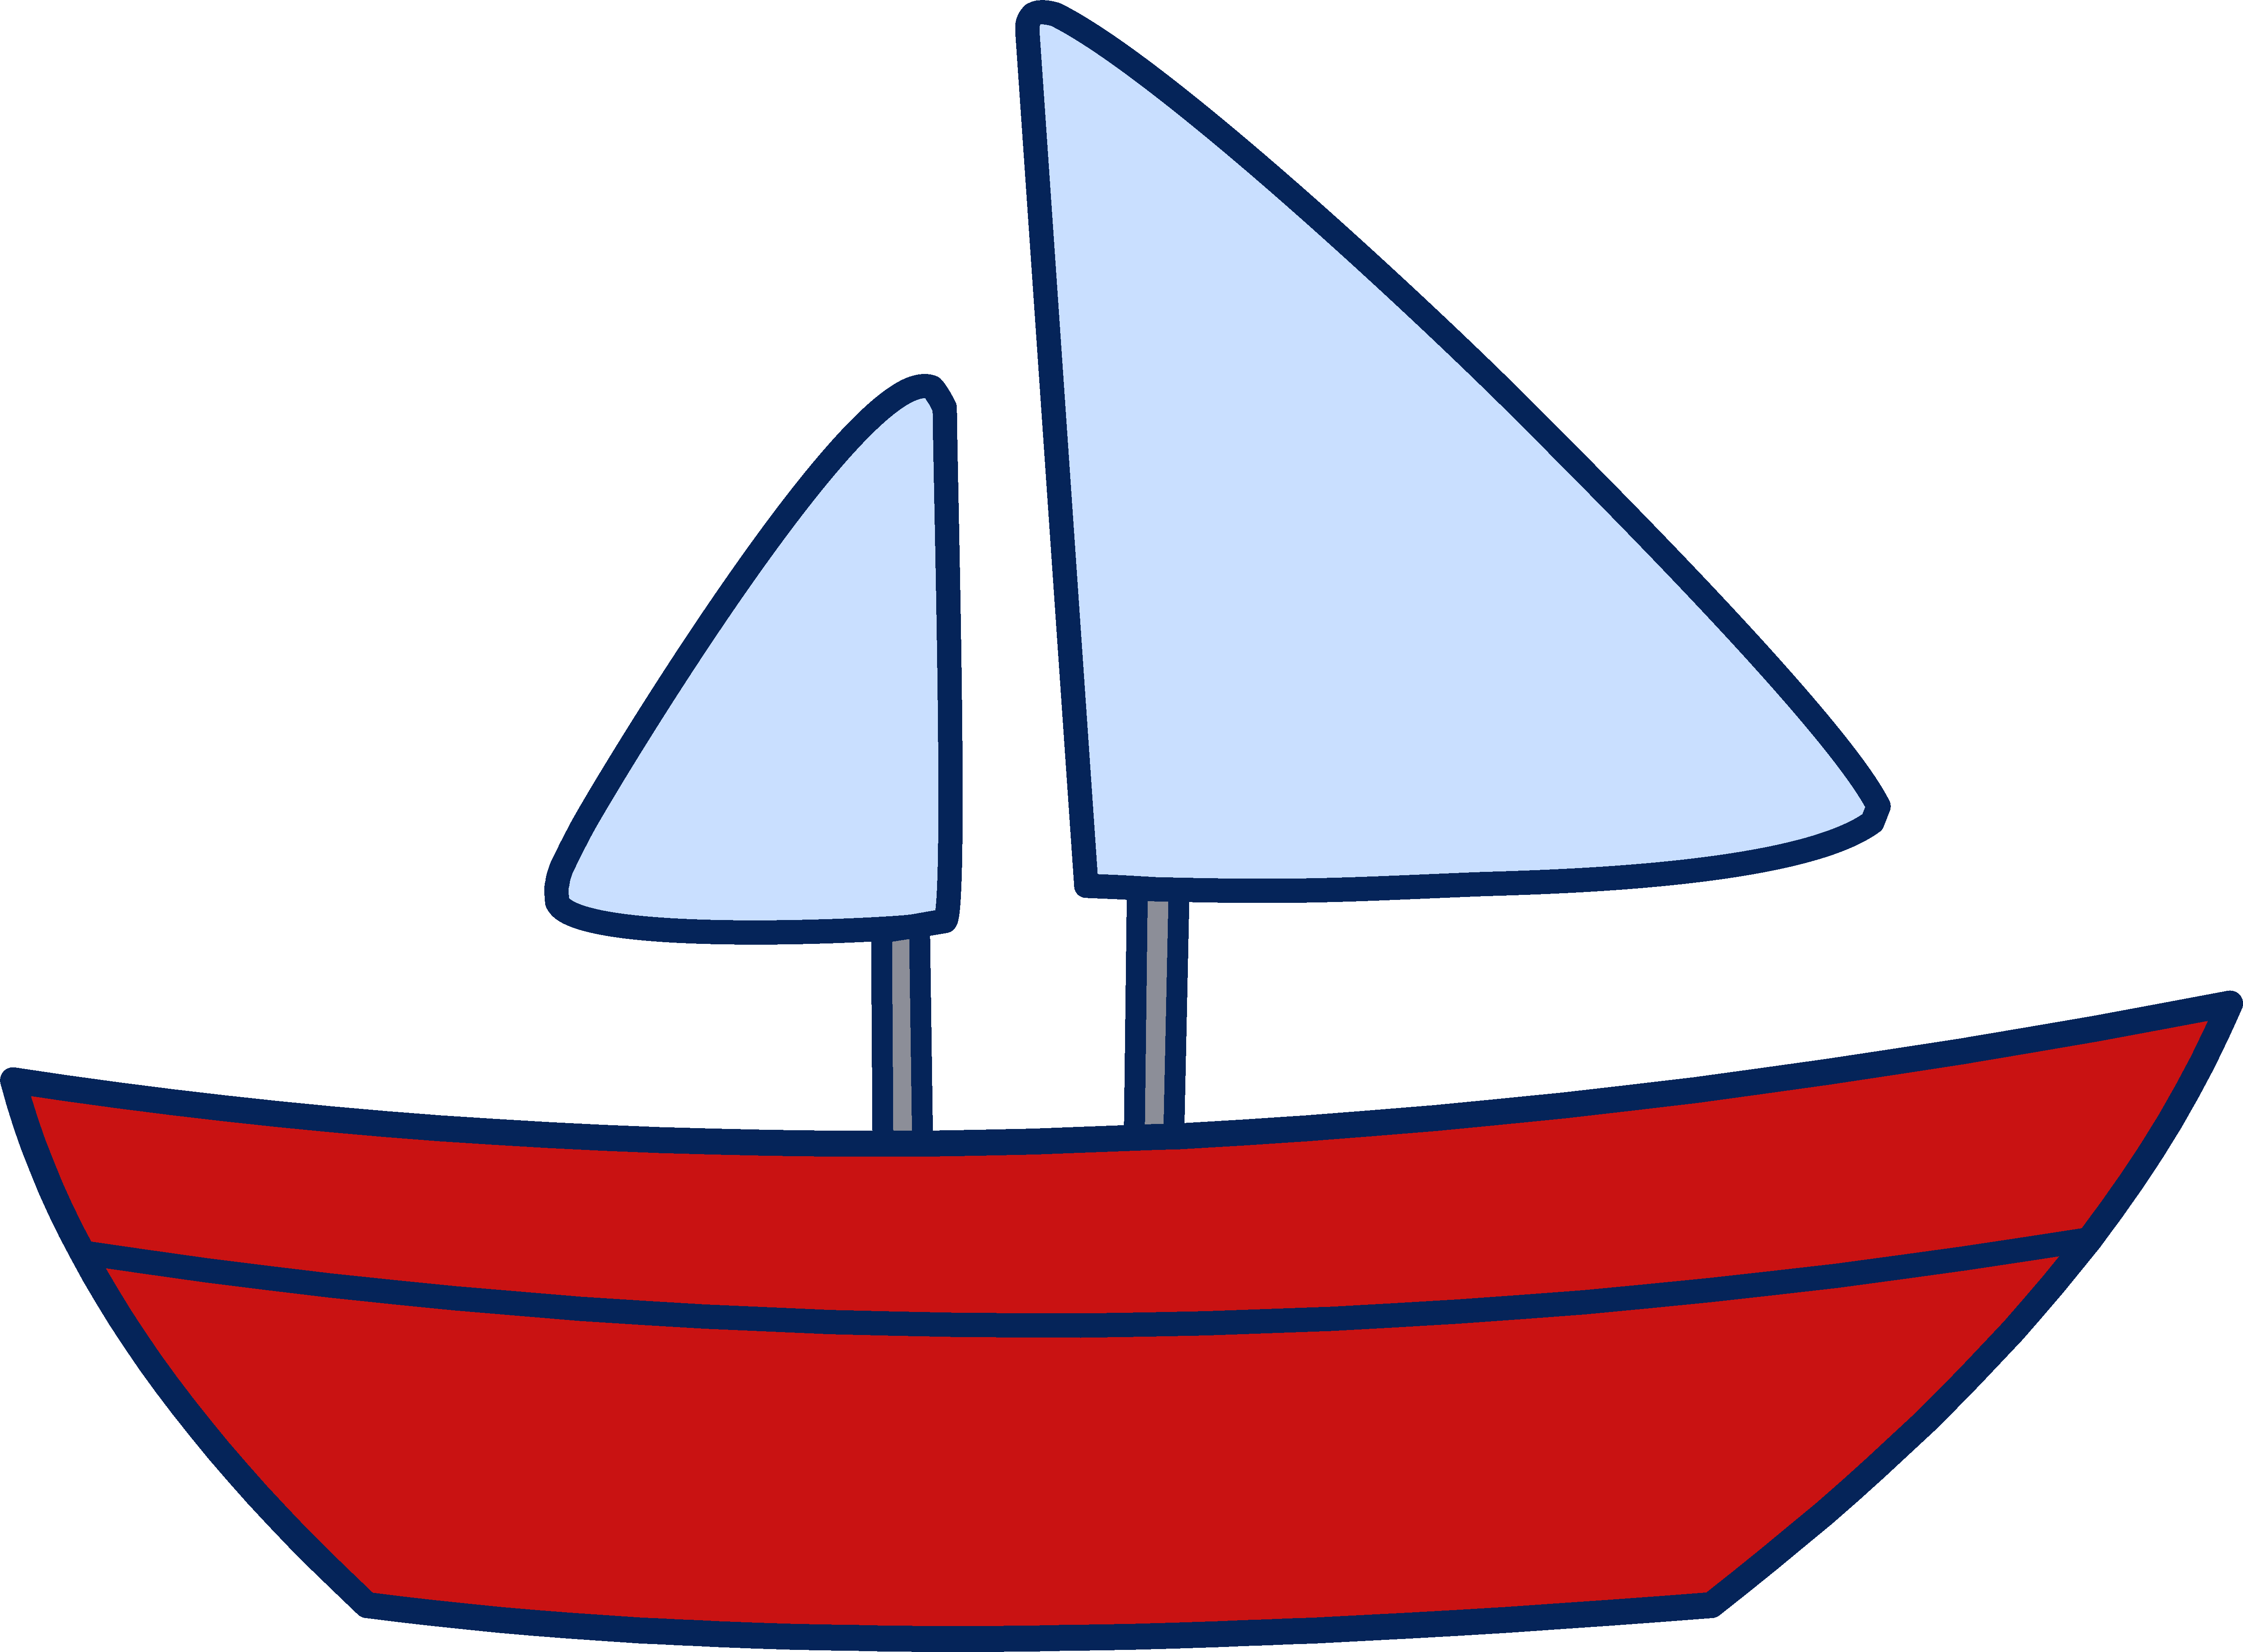 Free Sailing Ship Clipart in AI, SVG, EPS or PSD